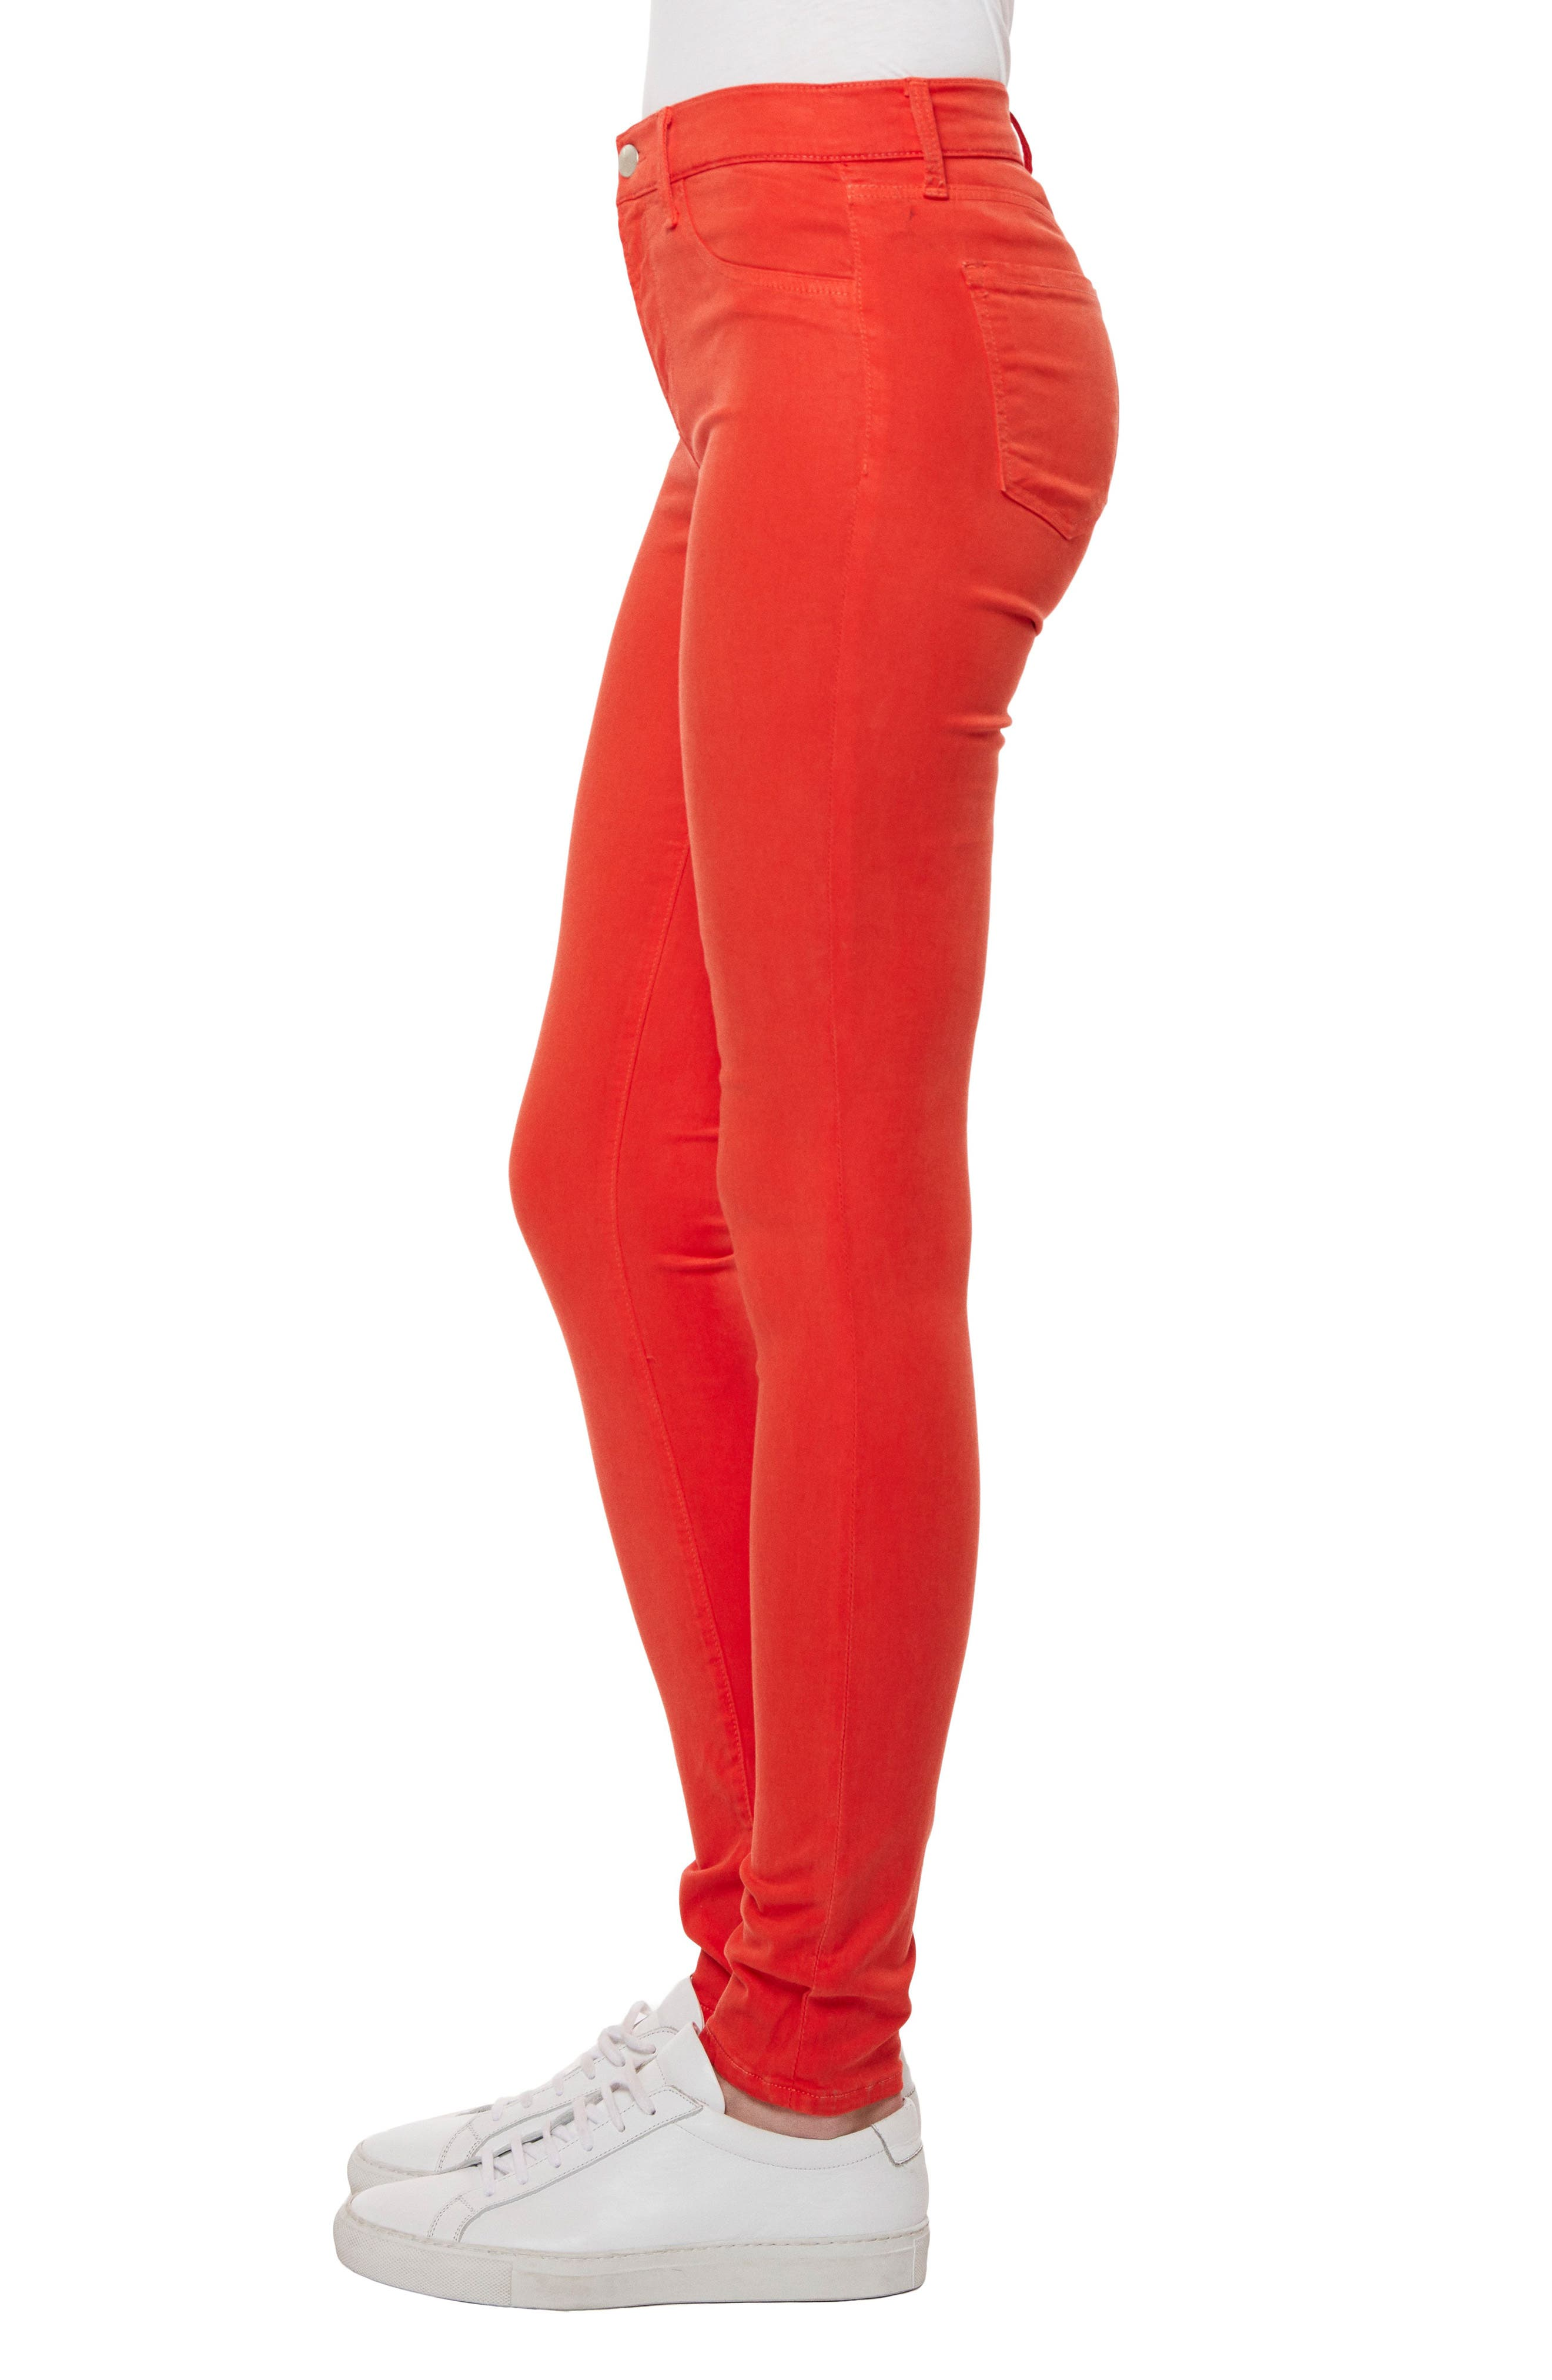 485 Mid Rise Skinny Jeans,                             Alternate thumbnail 3, color,                             Bright Coral